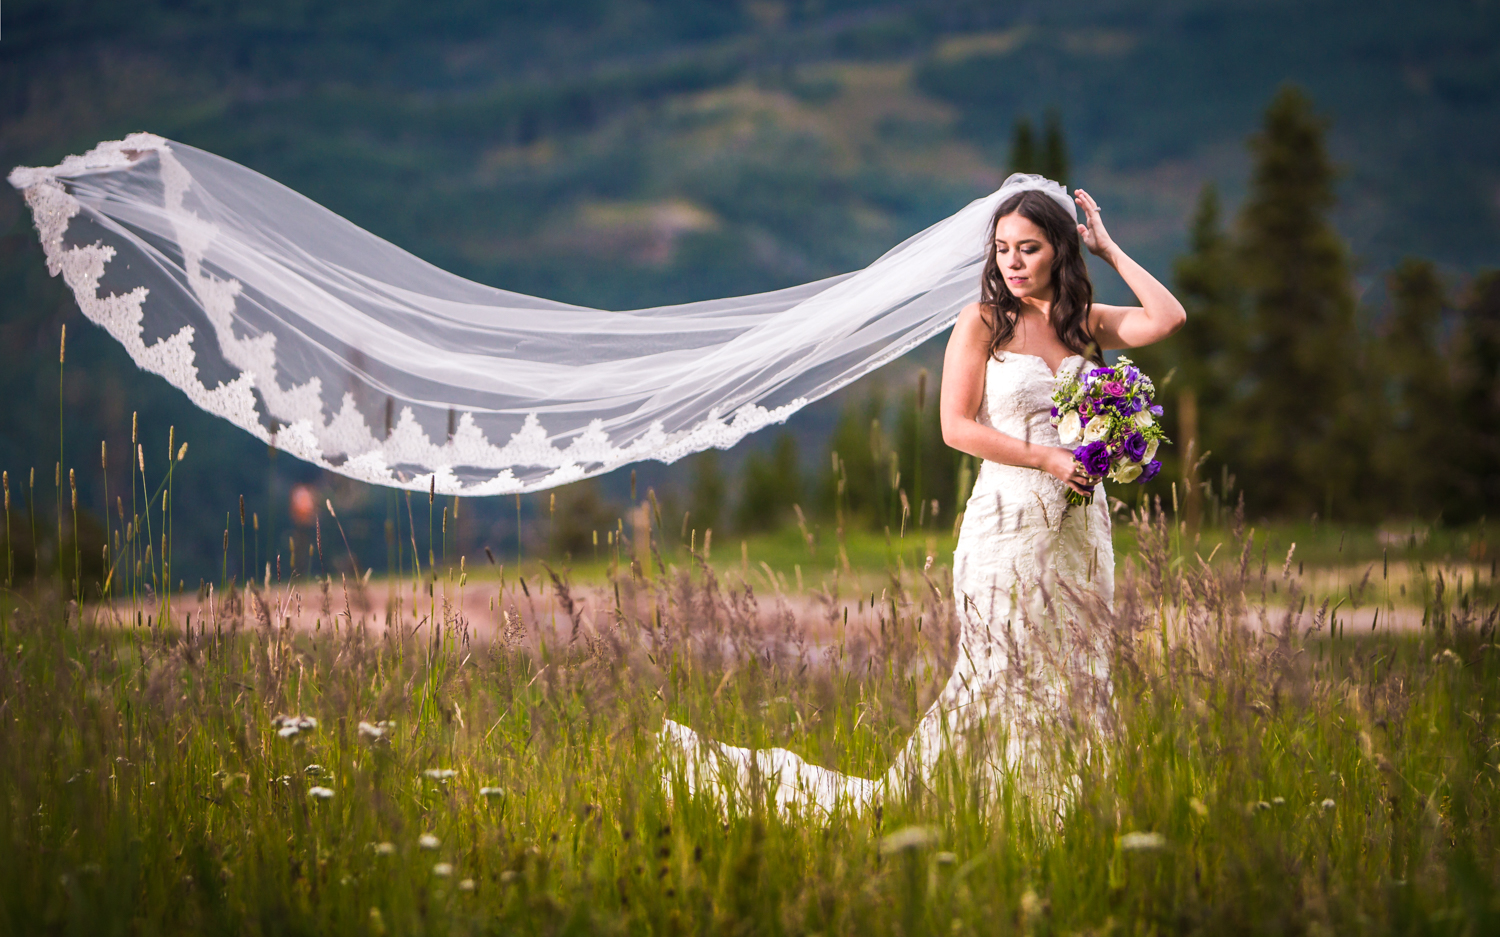 The bride's veil blowing in the wind. Vail Colorado Wedding photographed by JMGant Photography.